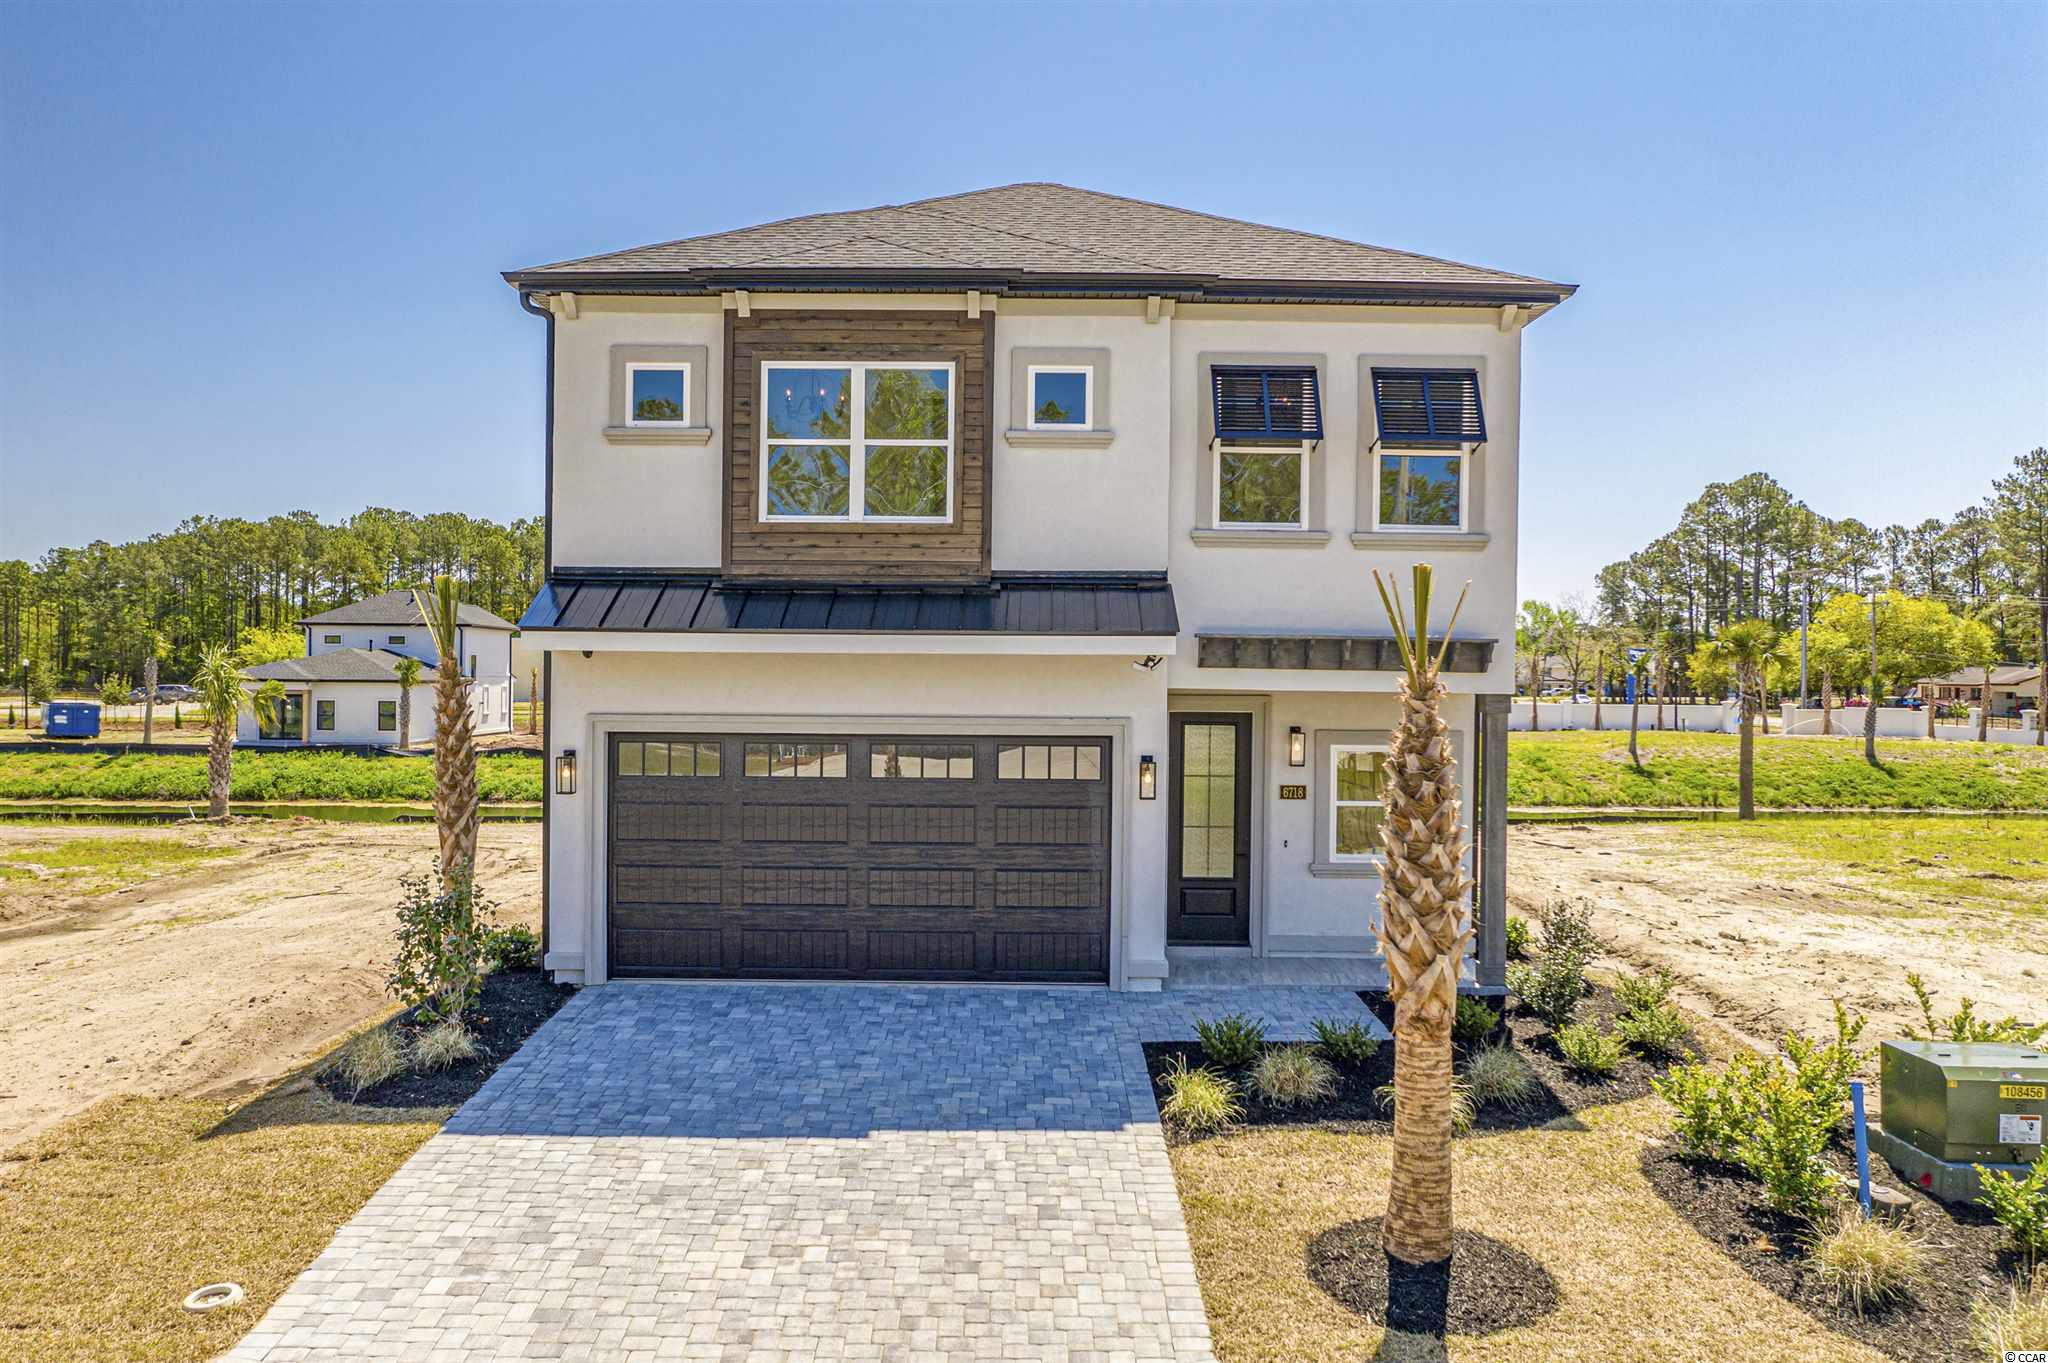 Welcome to Ocean Villas at 67th, a gated natural gas community!! This is a brand new, exquisite, gated community of custom modern, open floor plan homes with private lake views in the most desirable area of Myrtle Beach. Located within a short walk or golf cart ride(0.6mile) to the beach, you can enjoy Beach Living Daily. All of the homes will feature traditional stucco adding to the elegance and classiness of the neighborhood. This beautiful Yellow Fin model has a ground level master suite, coffered ceilings in living & dinning rooms, tray ceiling in master suite, walk in pantry, quartz countertops, & all stainless GE Café series appliances. Second floor features two bedrooms, study, & large storage room. There are only thirty-six lots offered in Ocean Villas at 67th, but each of the lots offer a private lake view for relaxing and enjoying the tranquil surroundings. Ocean Villas at 67th is centrally located just minutes to the Best Shopping, Dining, Entertainment, Golf Courses, Medical Facilities, Post Office, and of course BEACHES that the Grand Strand has to offer. Check out Ocean Villas at 67th TODAY, and Allow yourself to Live in an Atmosphere of Luxury and Comfort just minutes from the Atlantic Ocean.